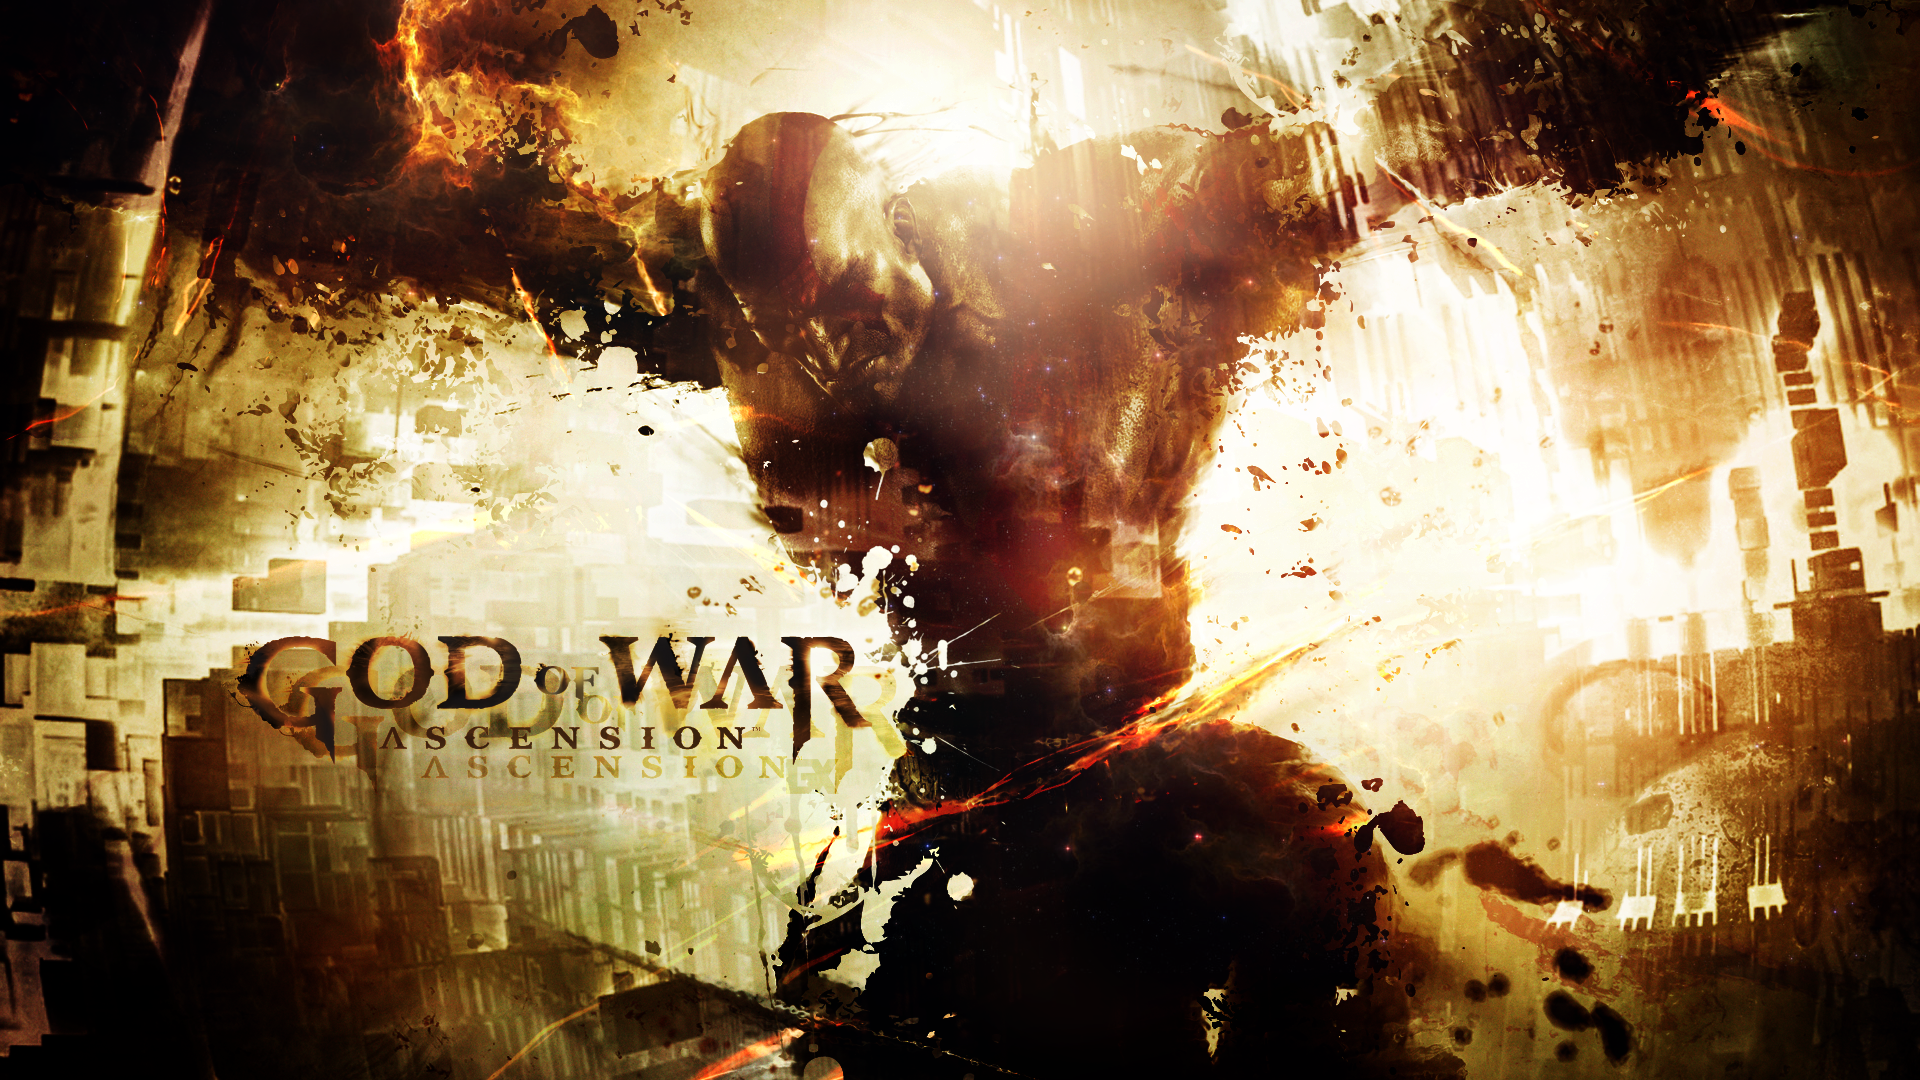 God Of War Ascension Wallpaper By Gigy1996 On Deviantart